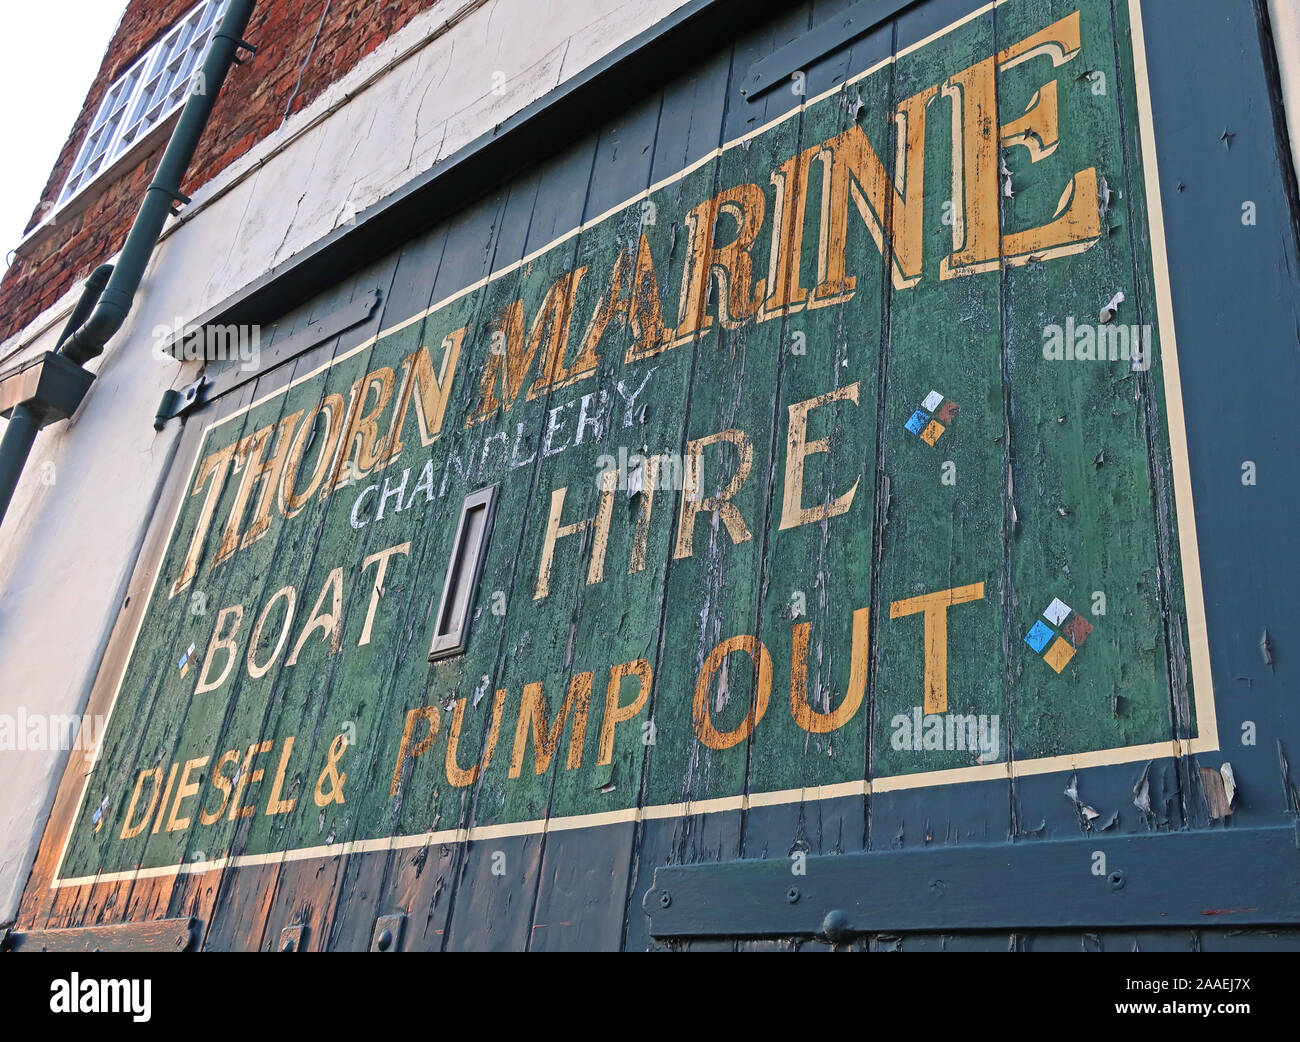 GotonySmith,UK,HotpixUK,@HotpixUK,pumpout,wood,wooden,painted,Warrington,waterway,WA4,Diesel Pump out,Cheshire,England,WA4 6LE,Thorn Marine,Chandlery Boat Hire,Diesel,Pump out,Stockton Heath,South Warrington,London Bridge,warehouse,warehousing,shop,store,retail,towpath,tow path,Manchester ship Canal Company,Peel Ports,Rambling Thorn,exterior,outside,historic,old boathouse